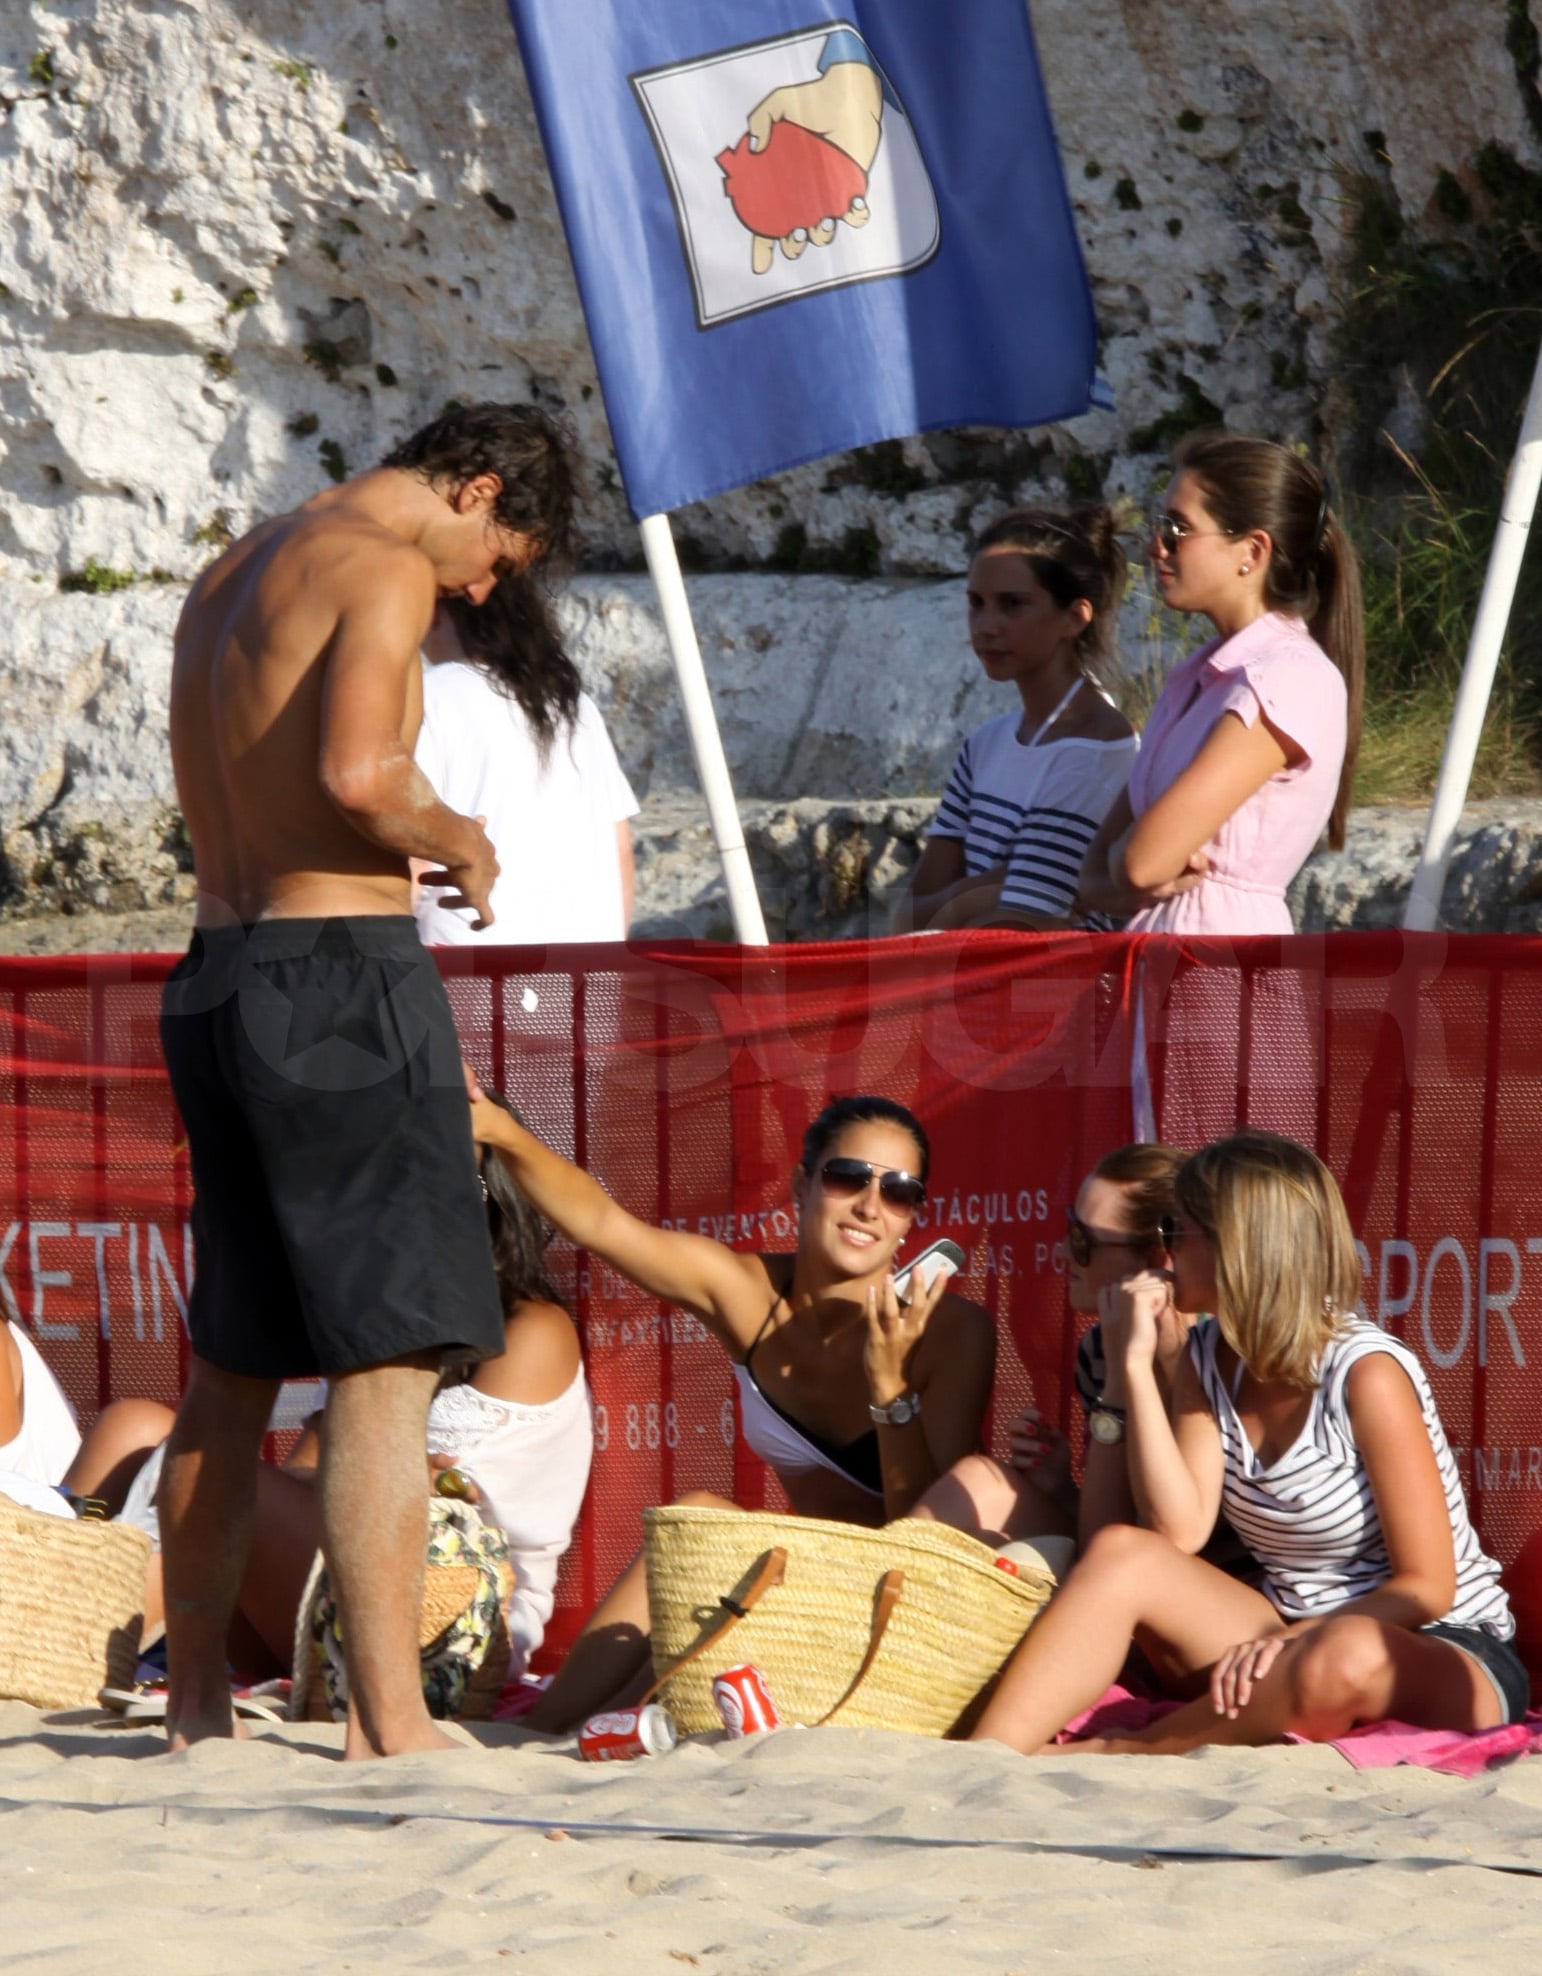 Rafael Nadal And Xisca Perello On The Beach Rafael Nadal Goes Shirtless For A Weekend In Majorca With His Bikini Clad Girlfriend Popsugar Celebrity Photo 9